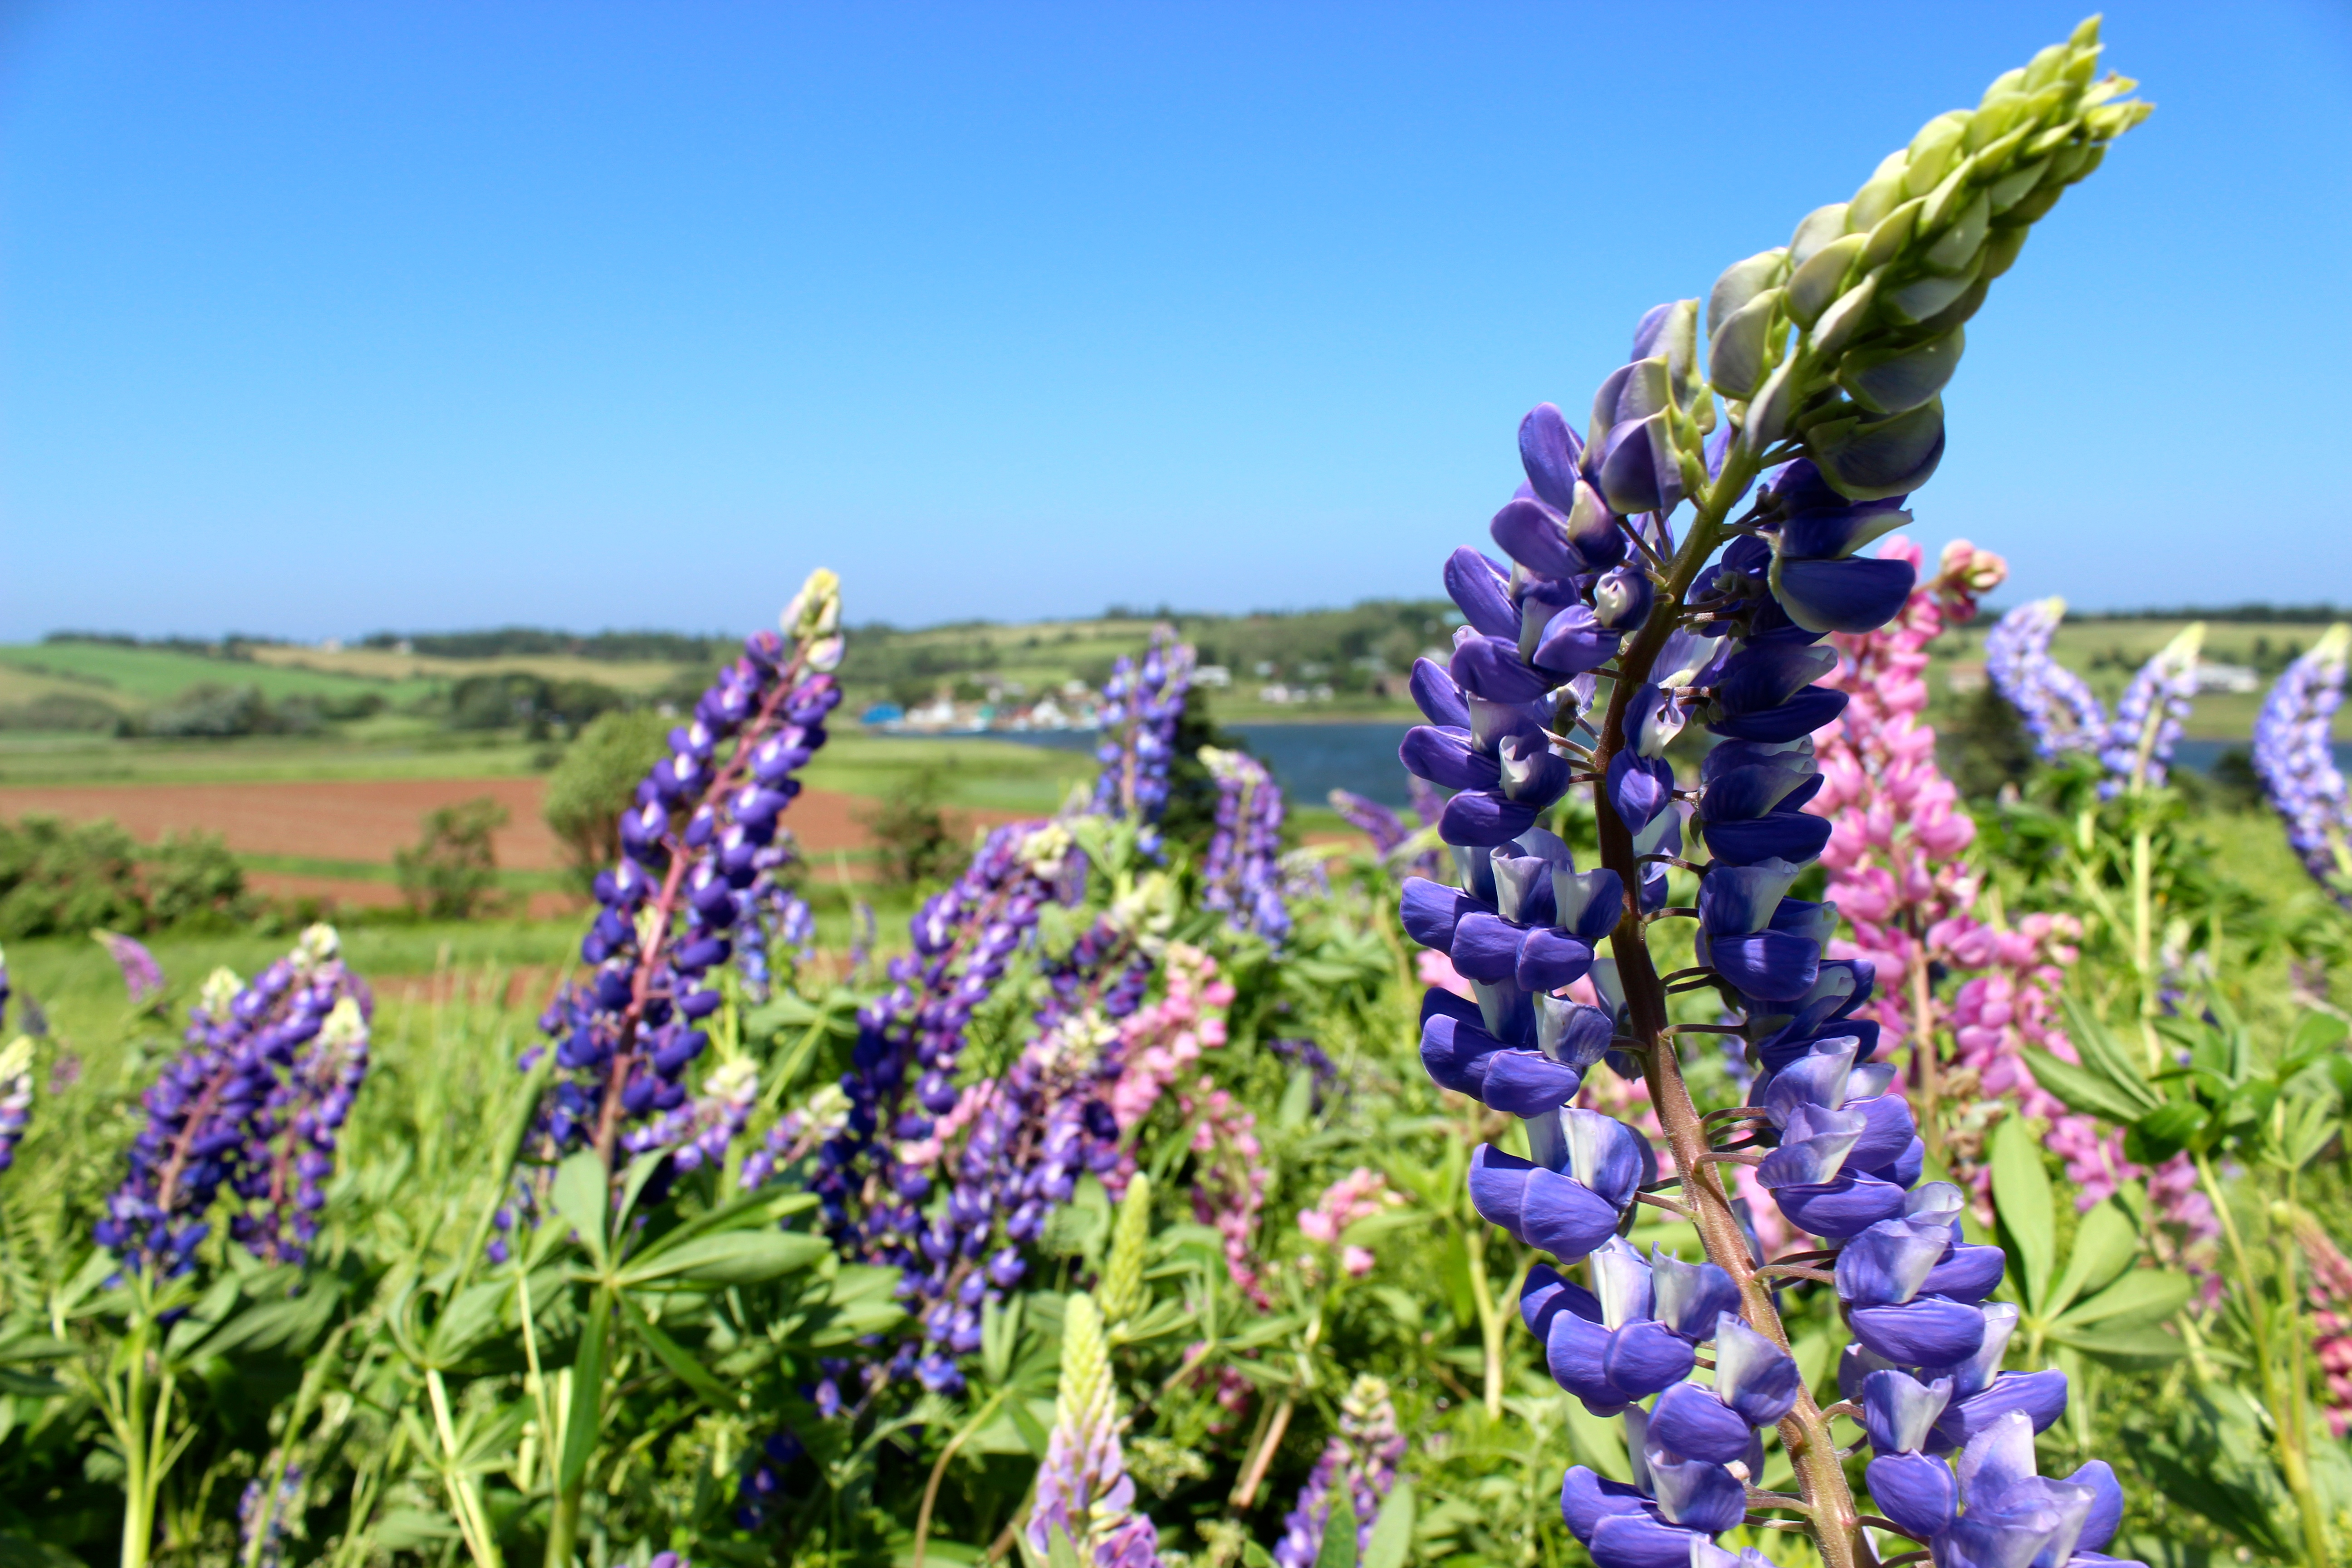 More lupins!